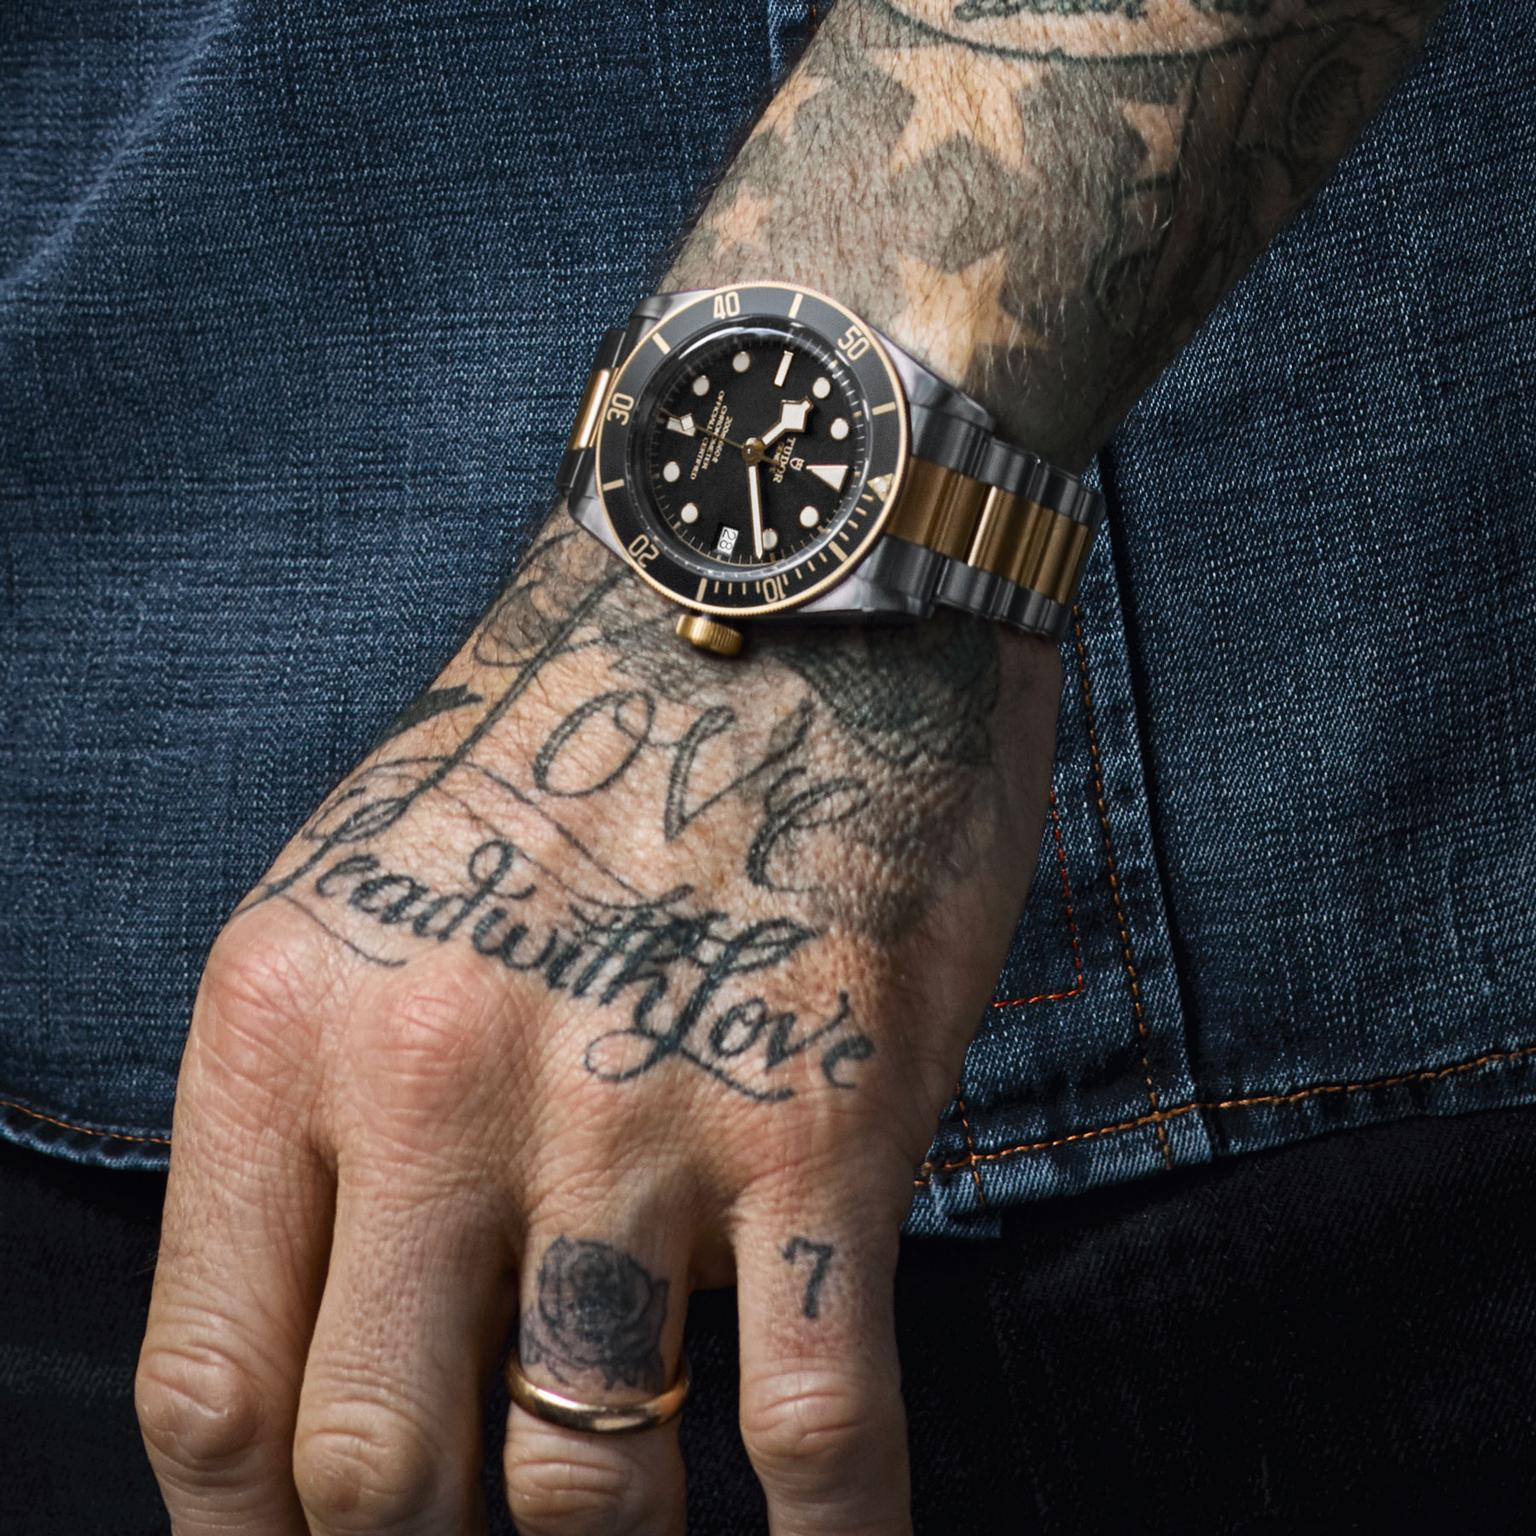 David Beckham for Tudor's Born to Dare watch campaign